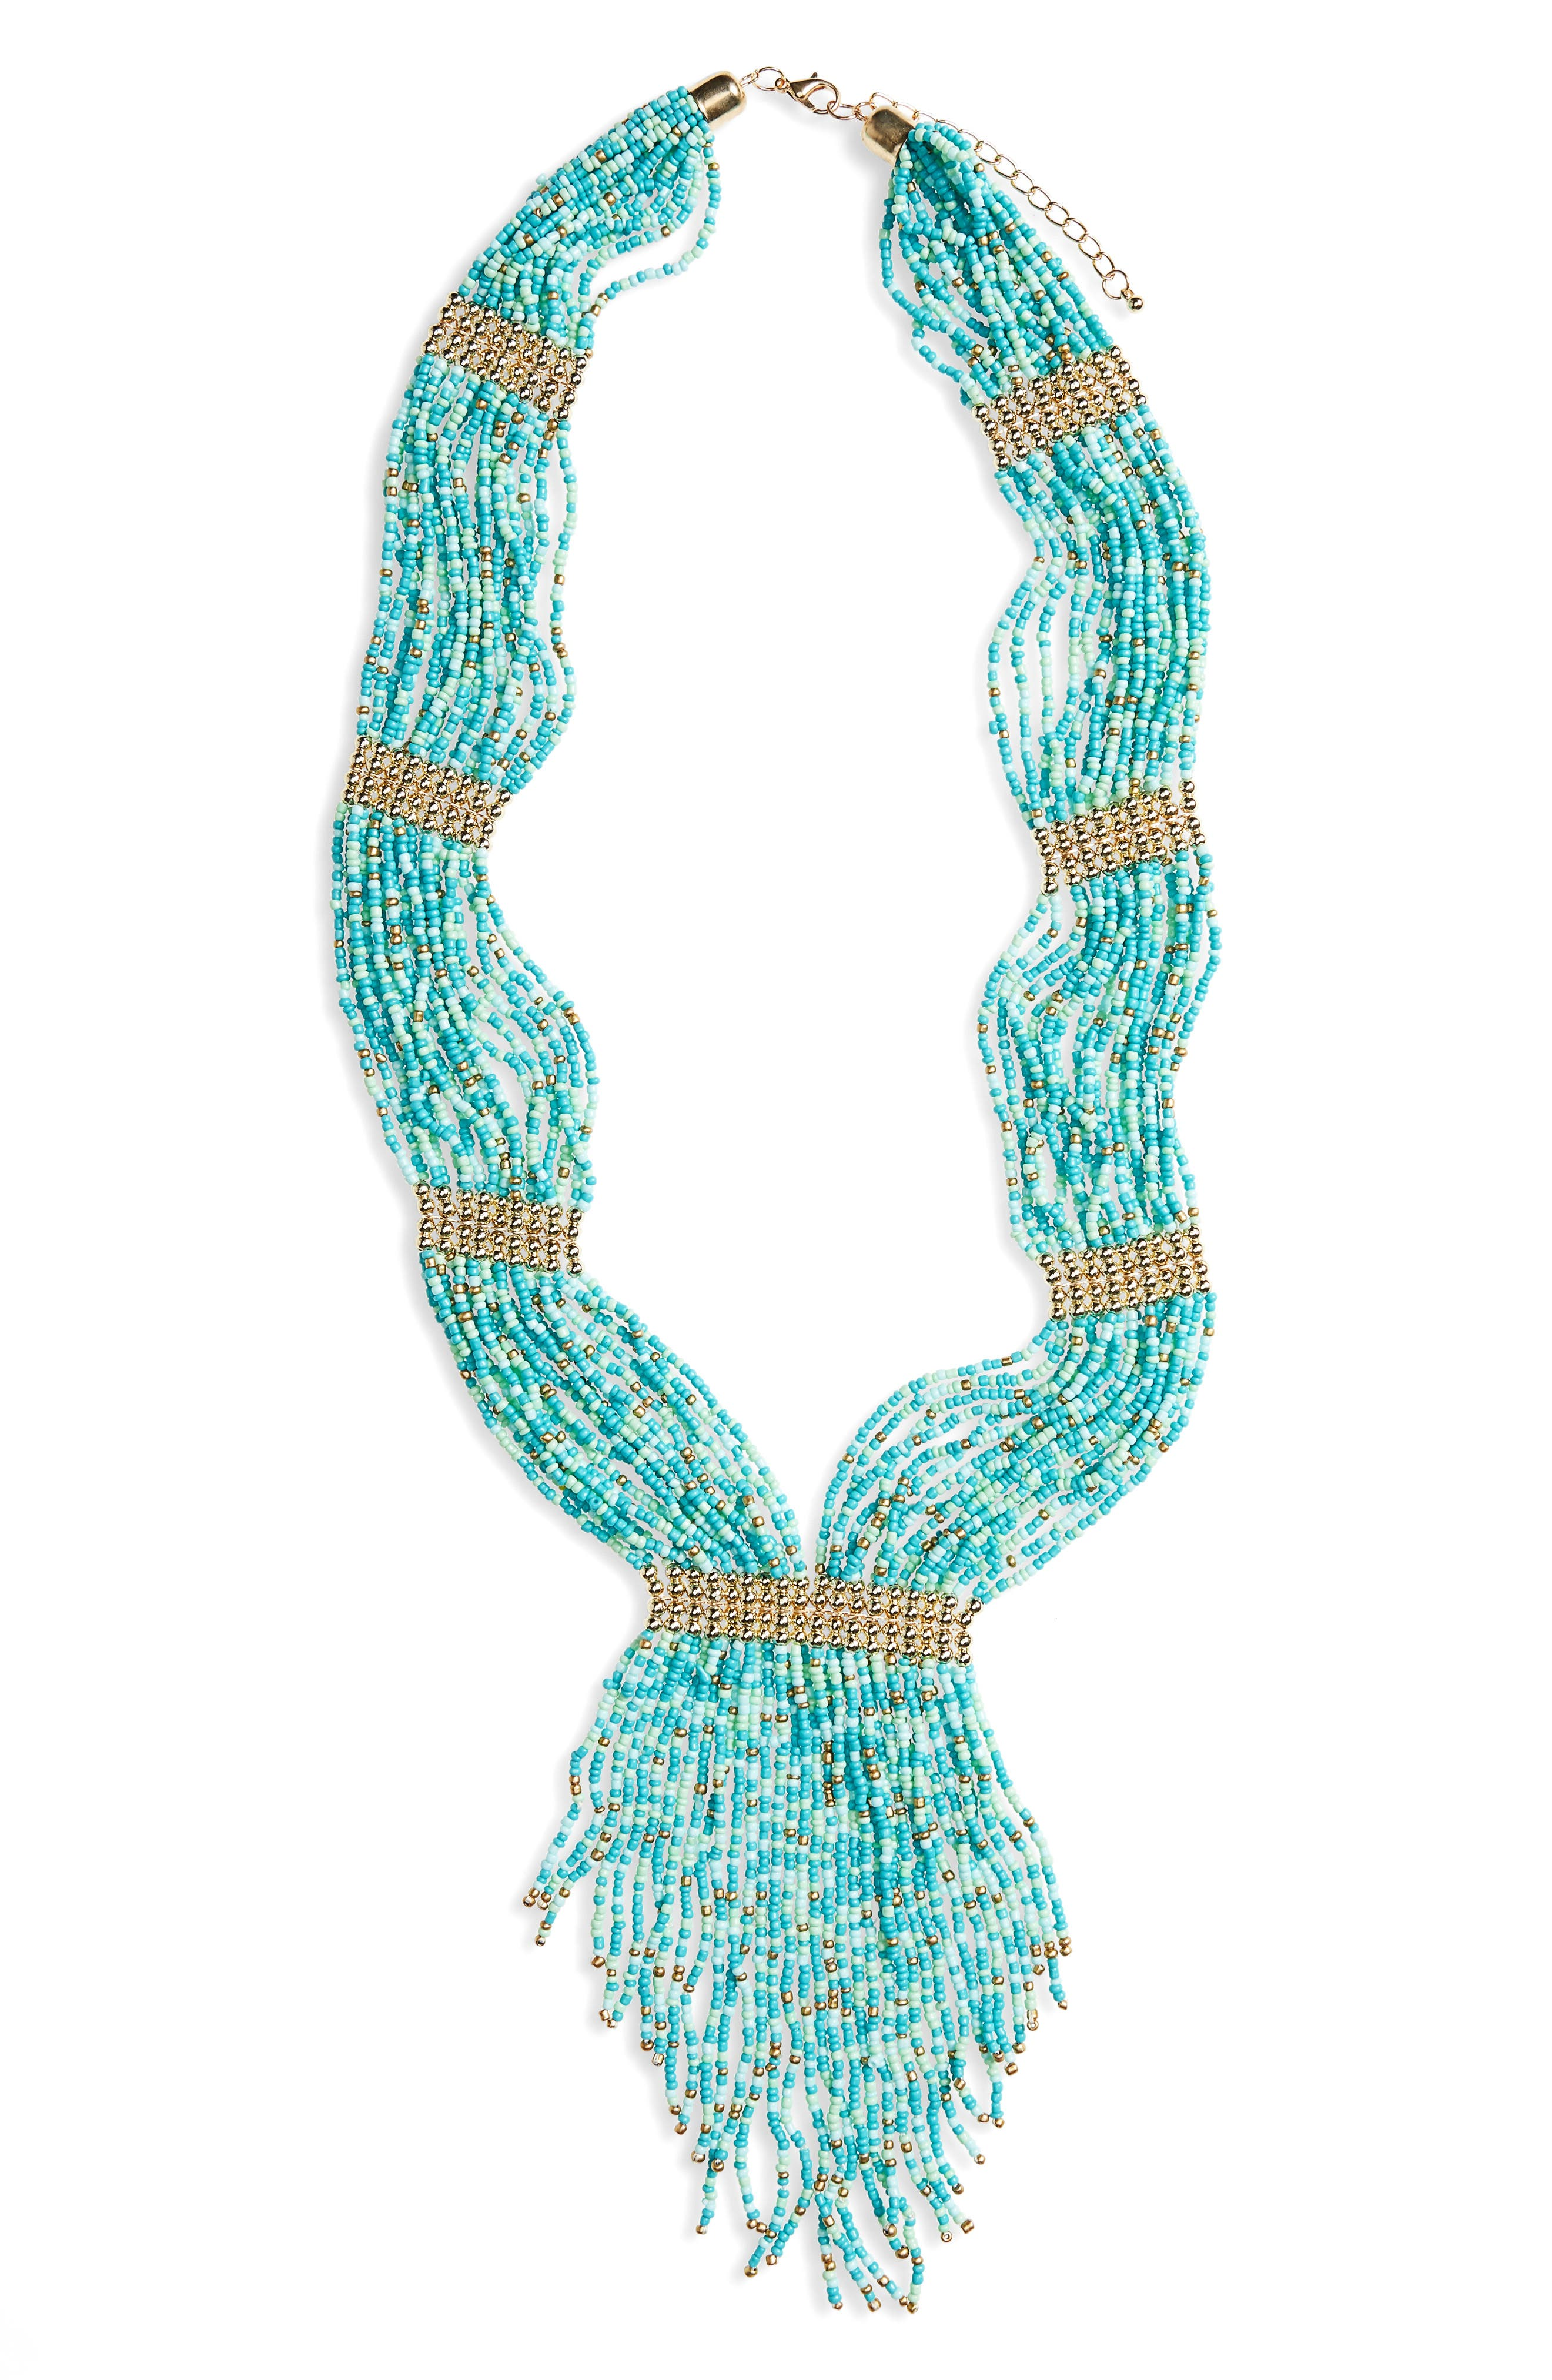 Bead Statement Necklace,                         Main,                         color, Turquoise